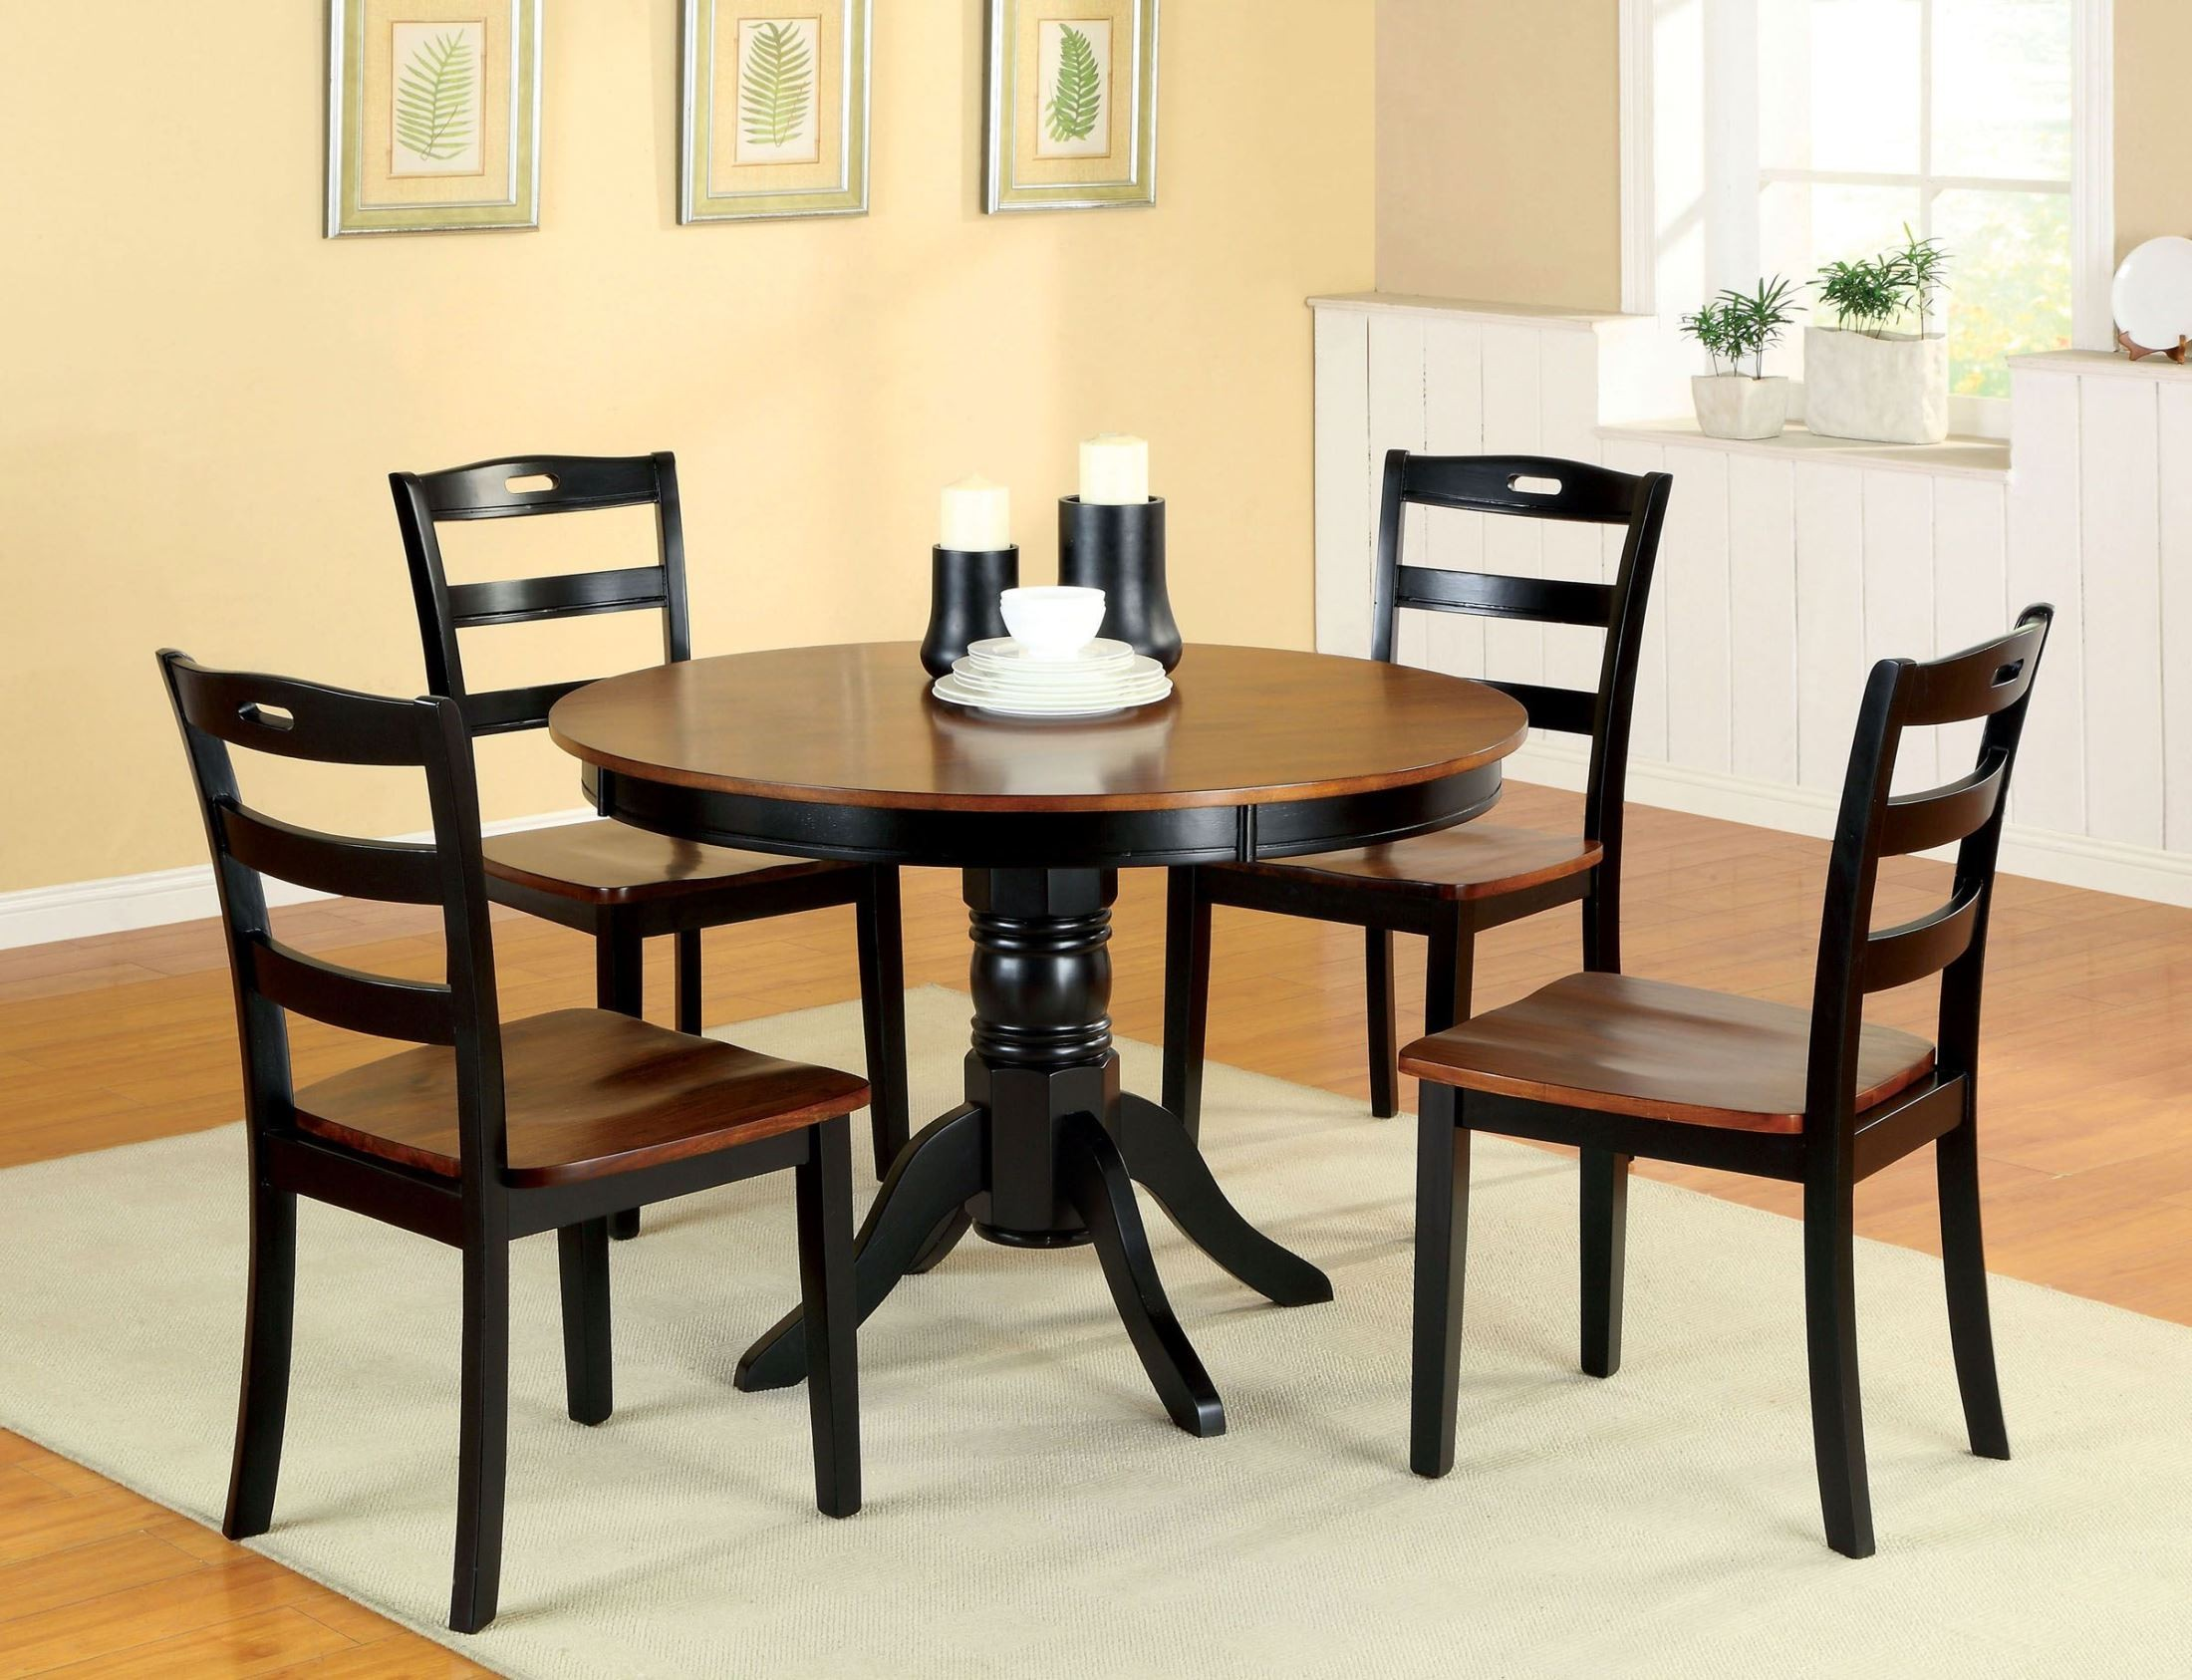 Johnstown antique oak and black round pedestal dining room for Black dining room furniture